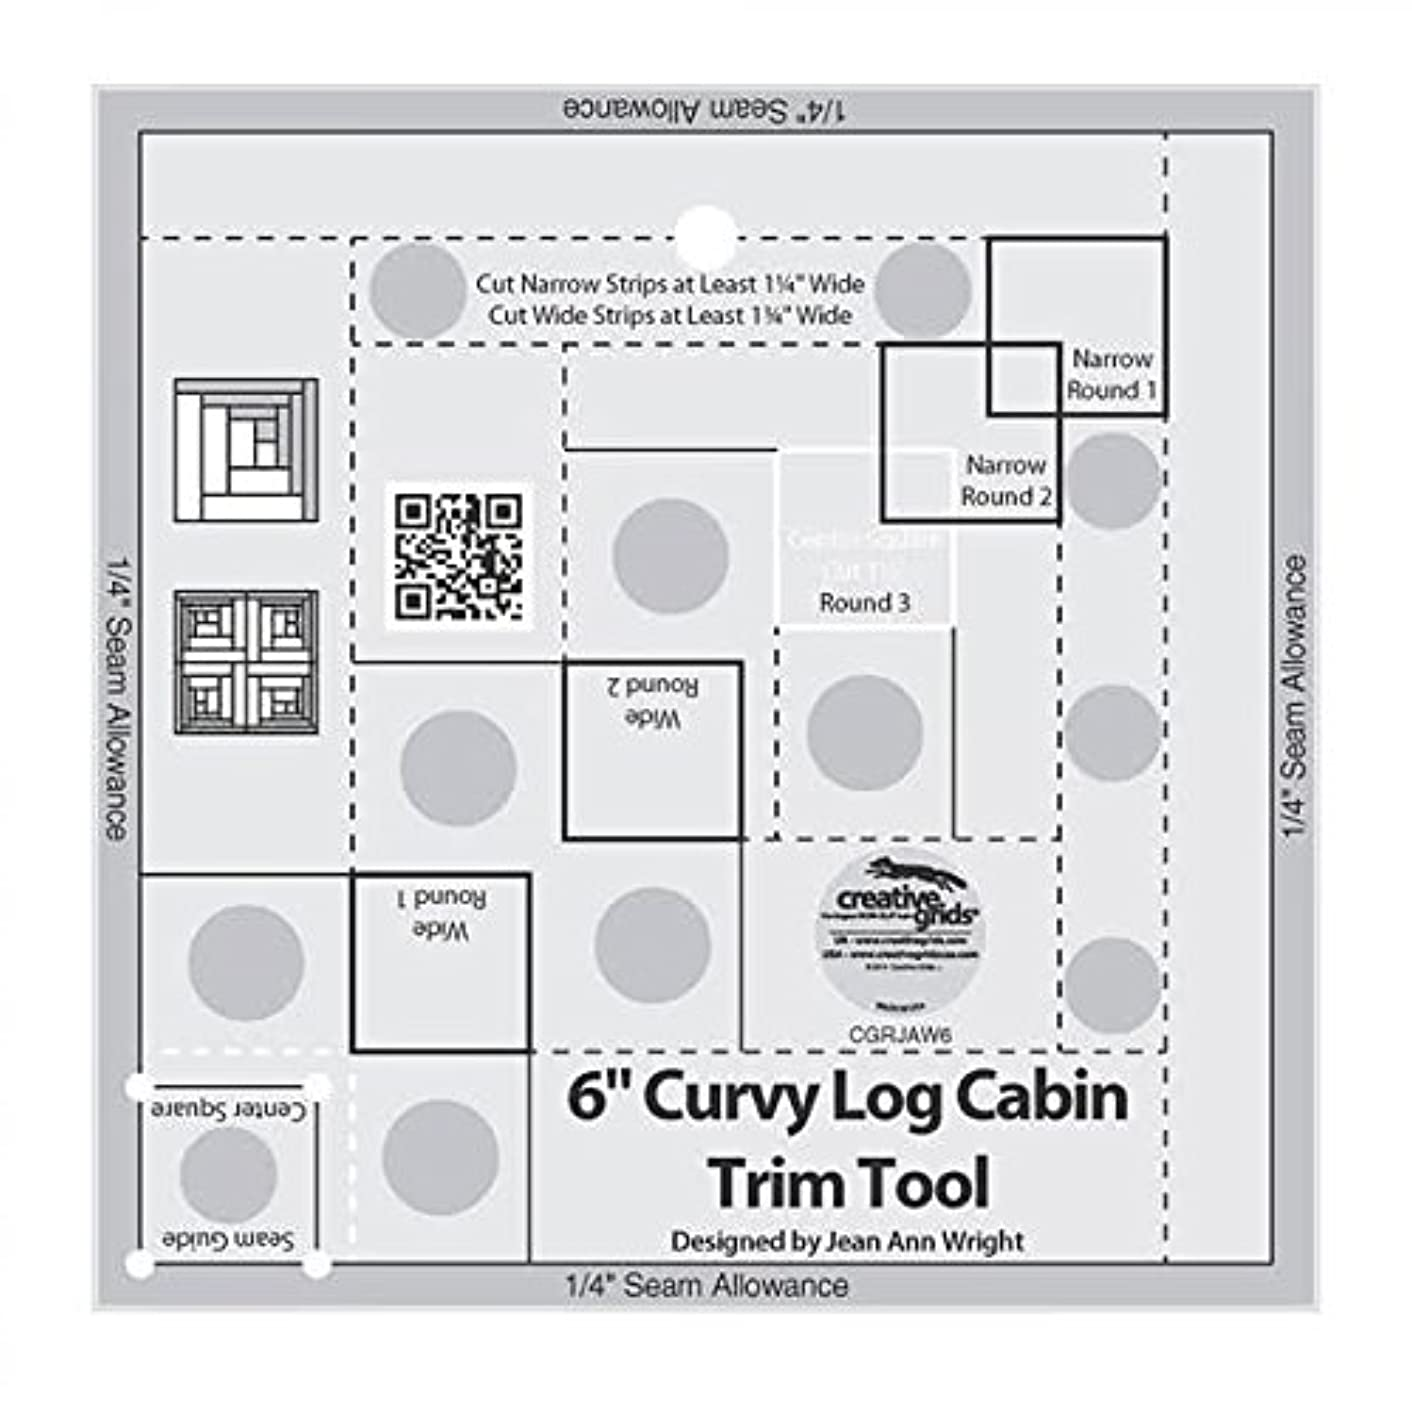 Creative Grids Curvy Log Cabin Trim Tool Quilting Ruler Template for 6